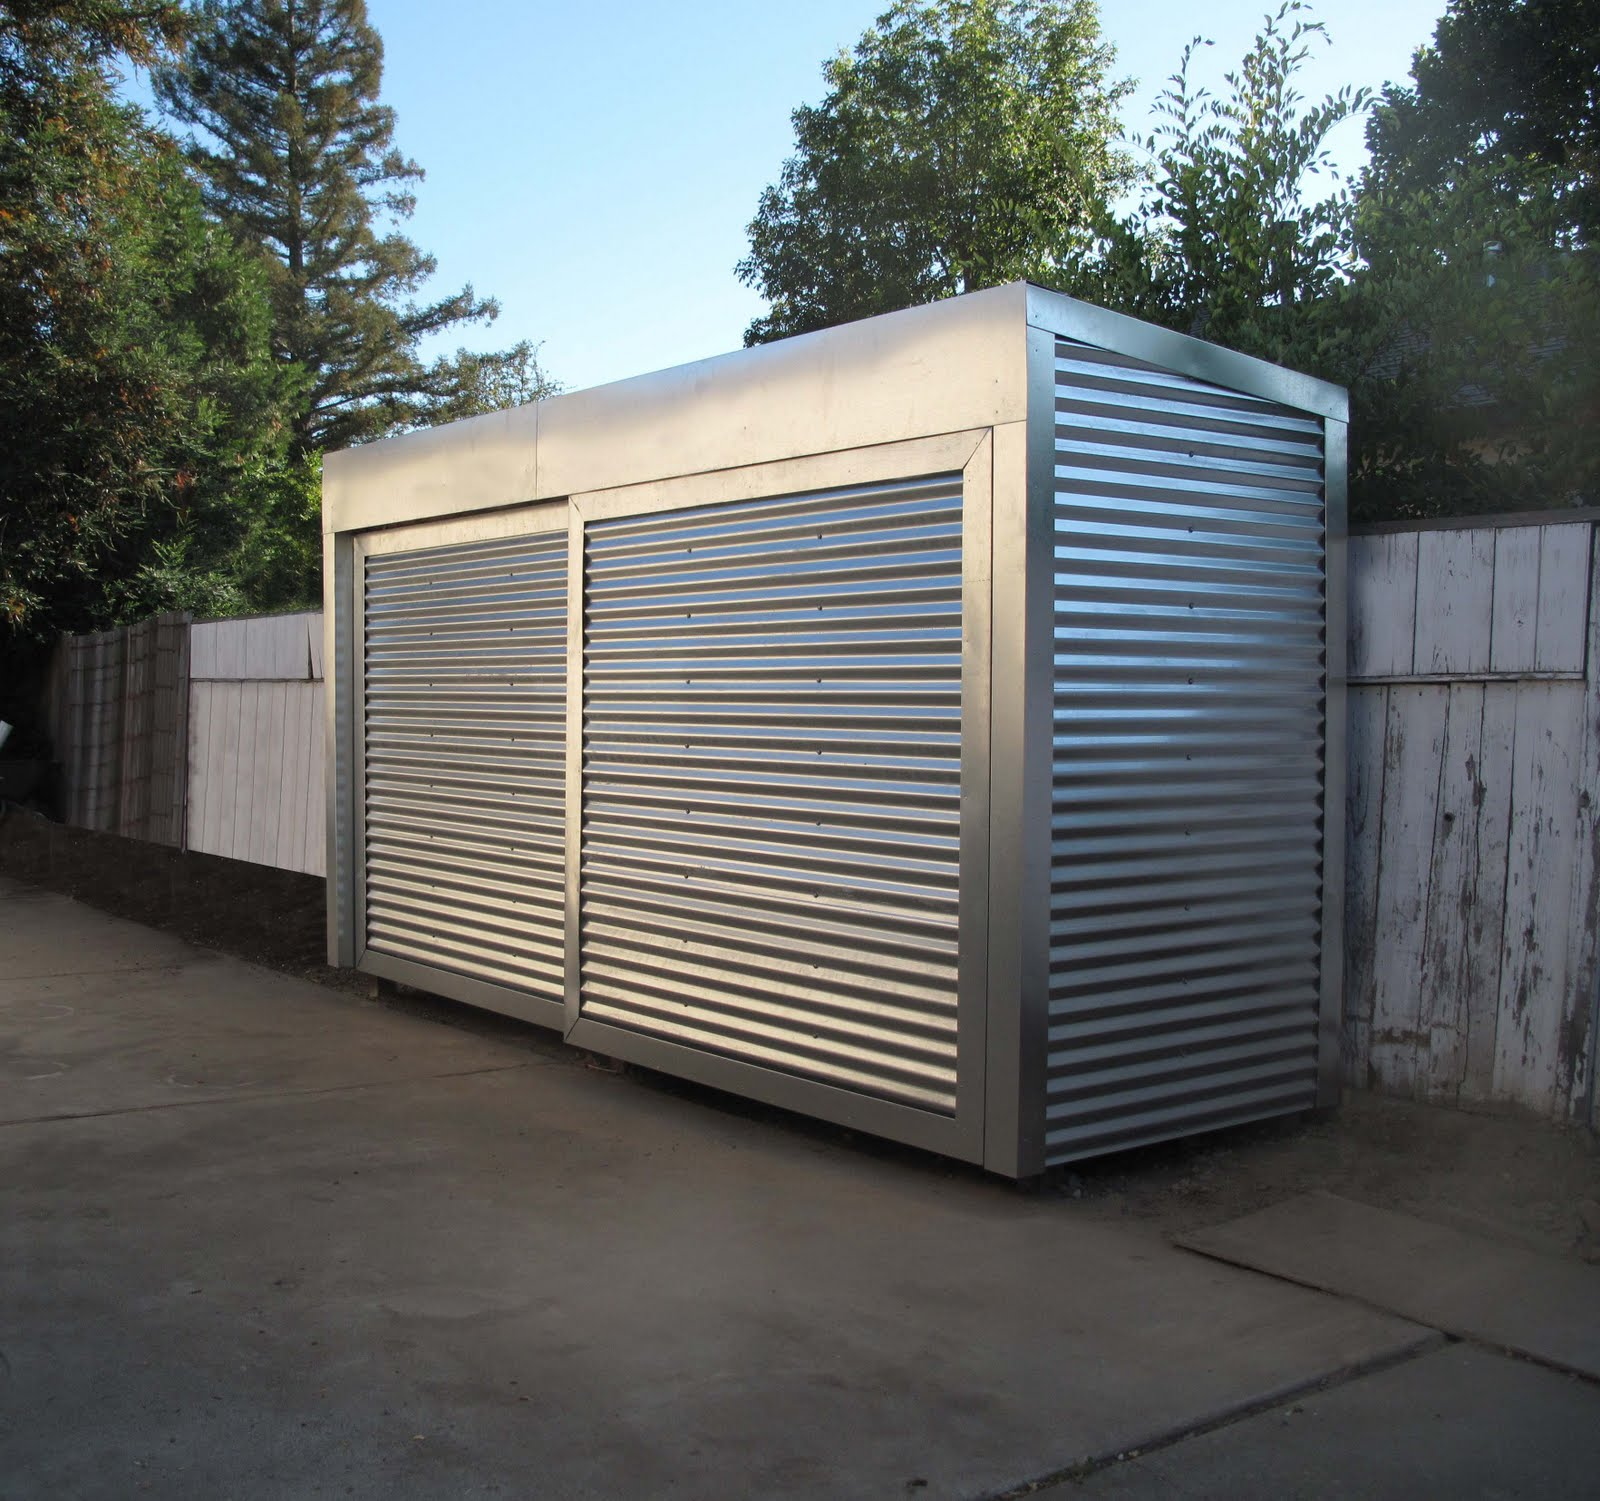 Simple Steel Garages With Two Levels Ideas (View 9 of 10)